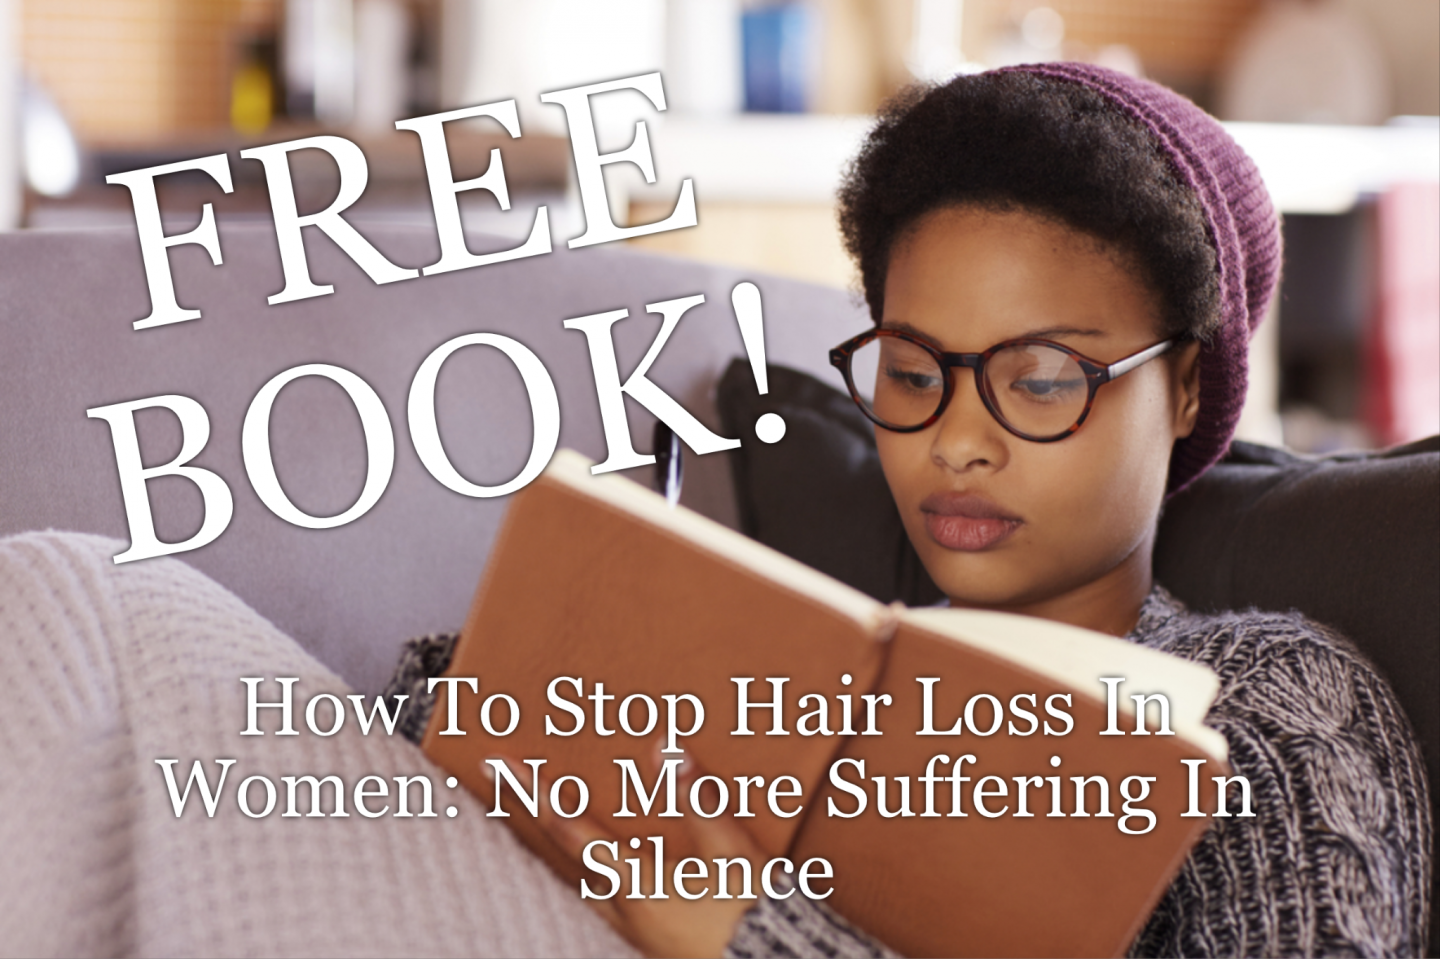 Free Book for you! It's the start of the holidays and I wanted to share my popular Kindle,How To Stop Hair Loss In Women: No More Suffering In Silence.